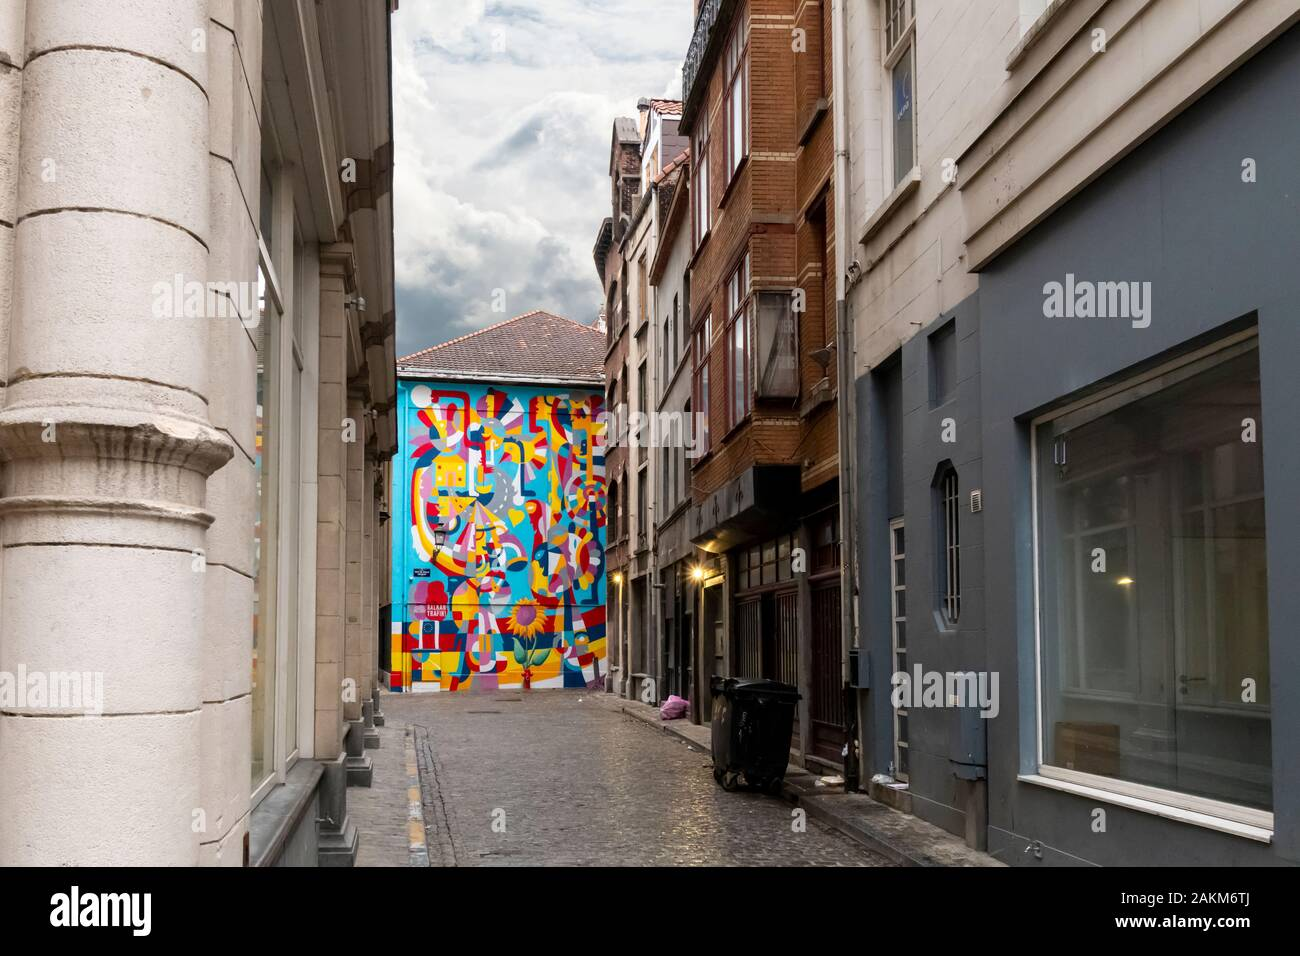 A colorfully painted wall at the end of a street alley on a rainy day in the historic center of Brussels, Belgium. Stock Photo